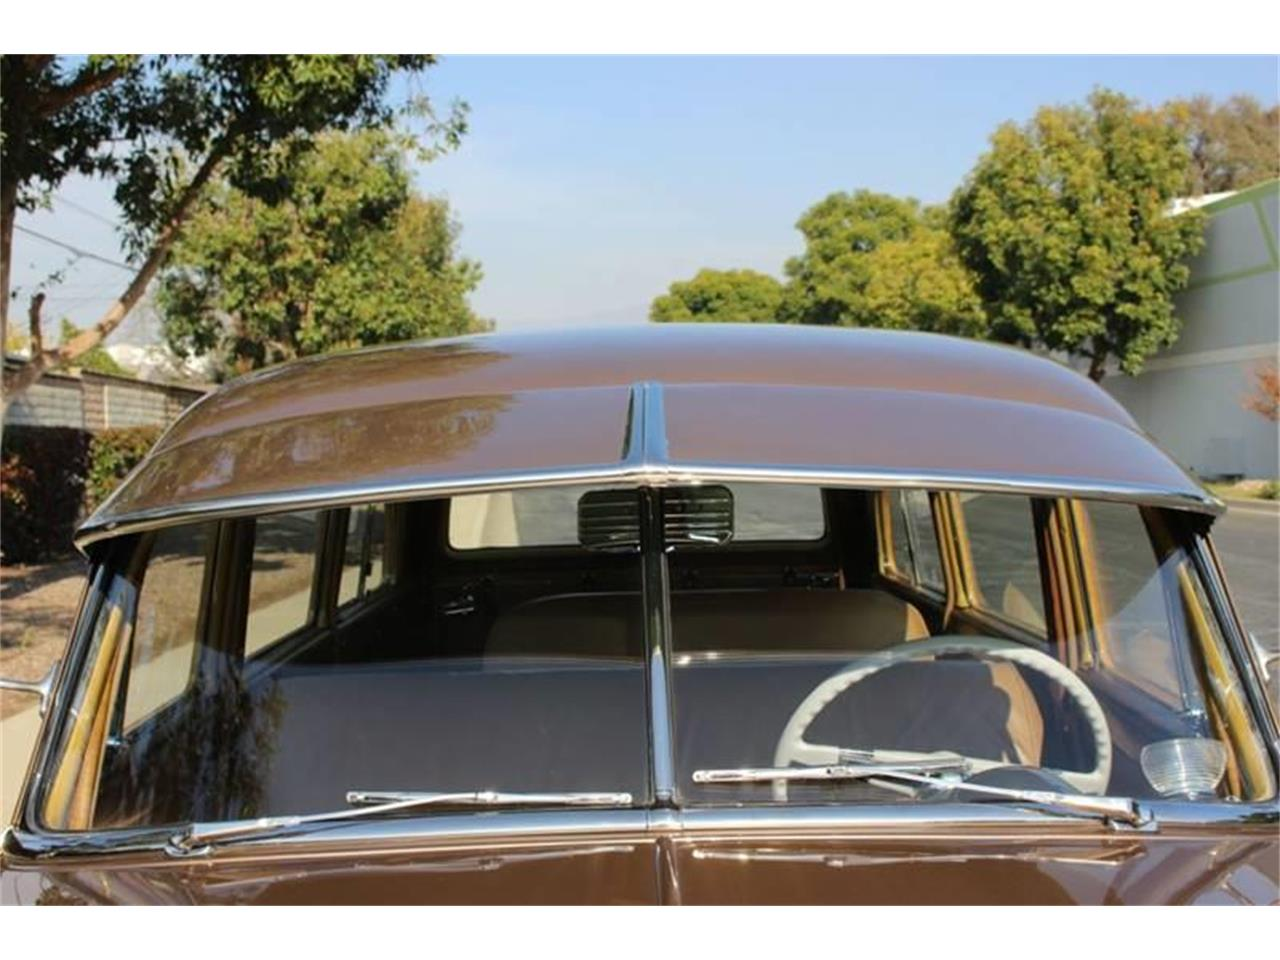 1950 Chevrolet Styleline Deluxe for sale in La Verne, CA – photo 20